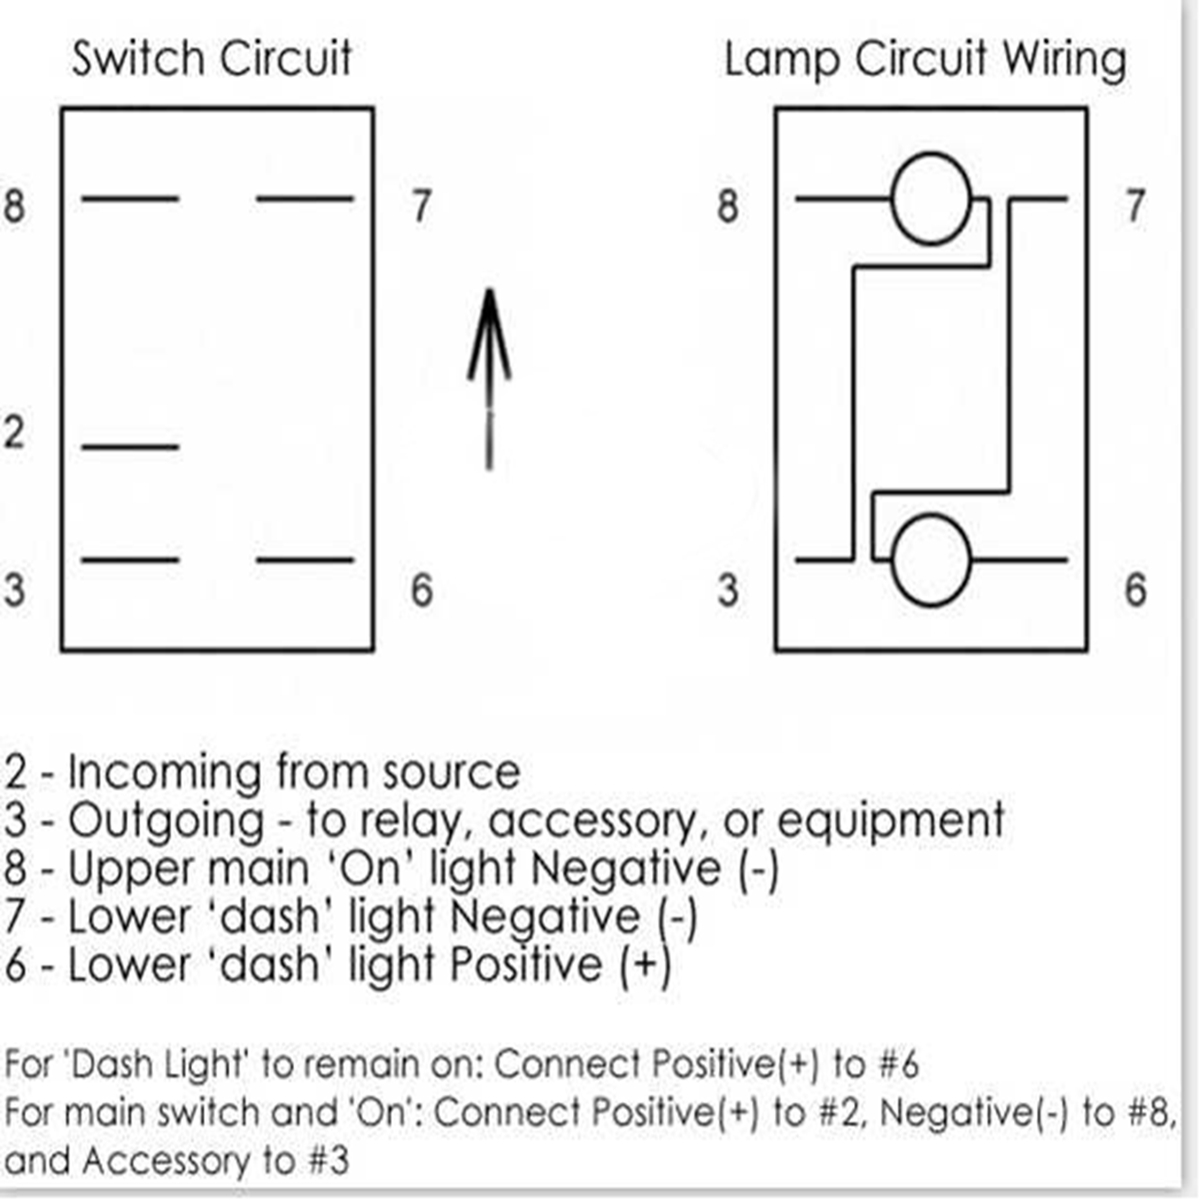 Switch Wiring Diagram Carling Get Free Image About Wiring Diagram